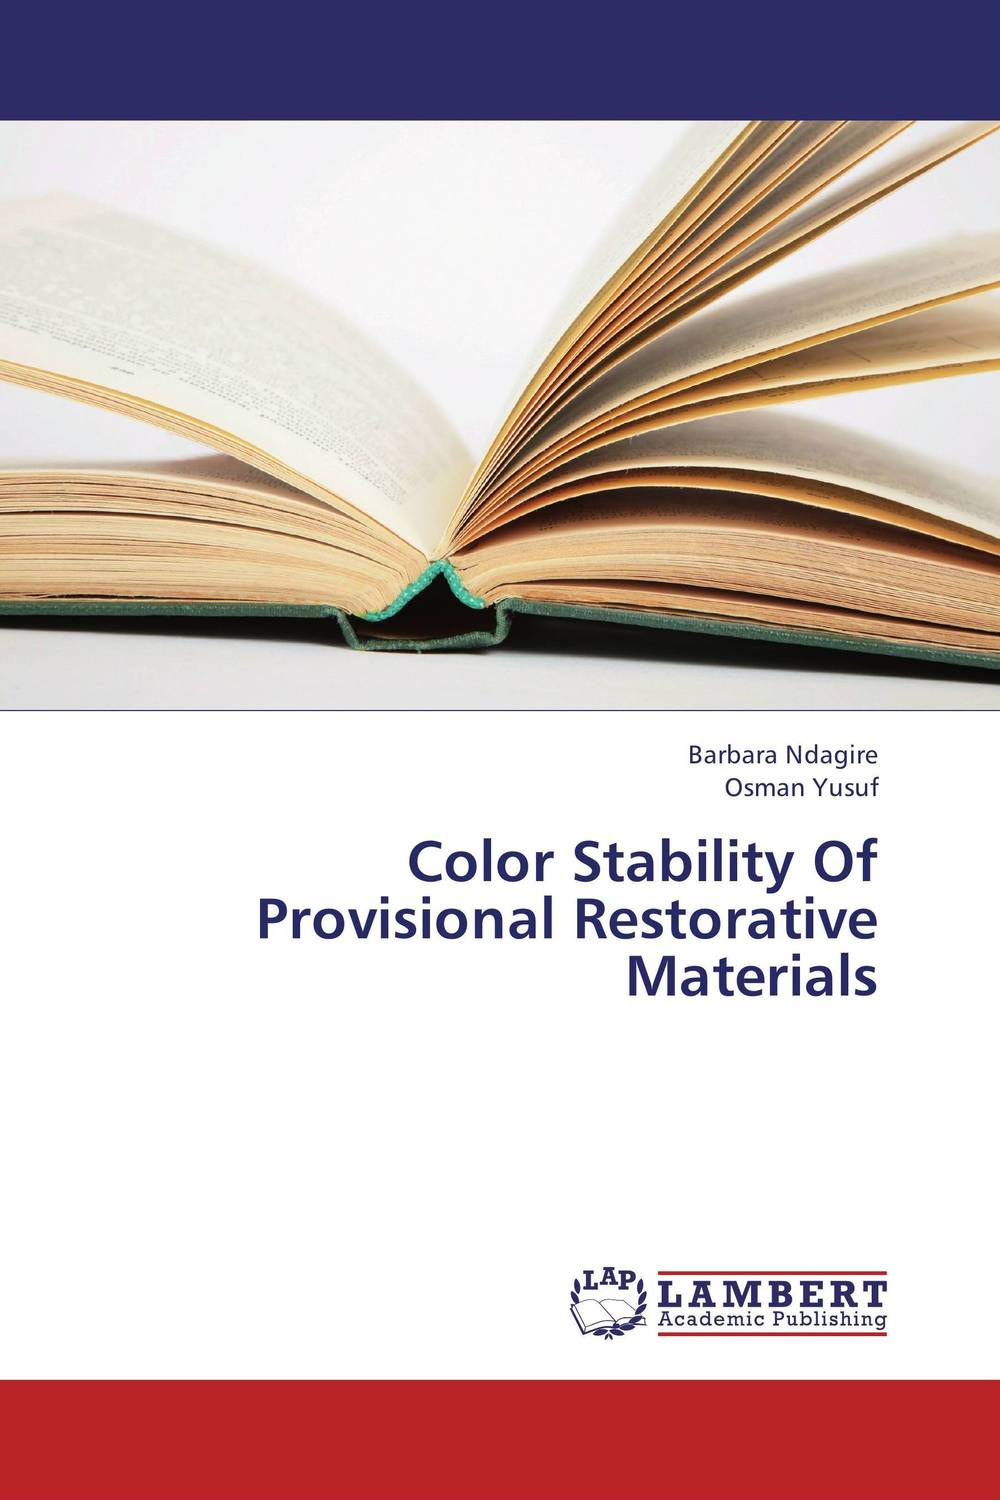 Color Stability Of Provisional Restorative Materials restorative justice for juveniles